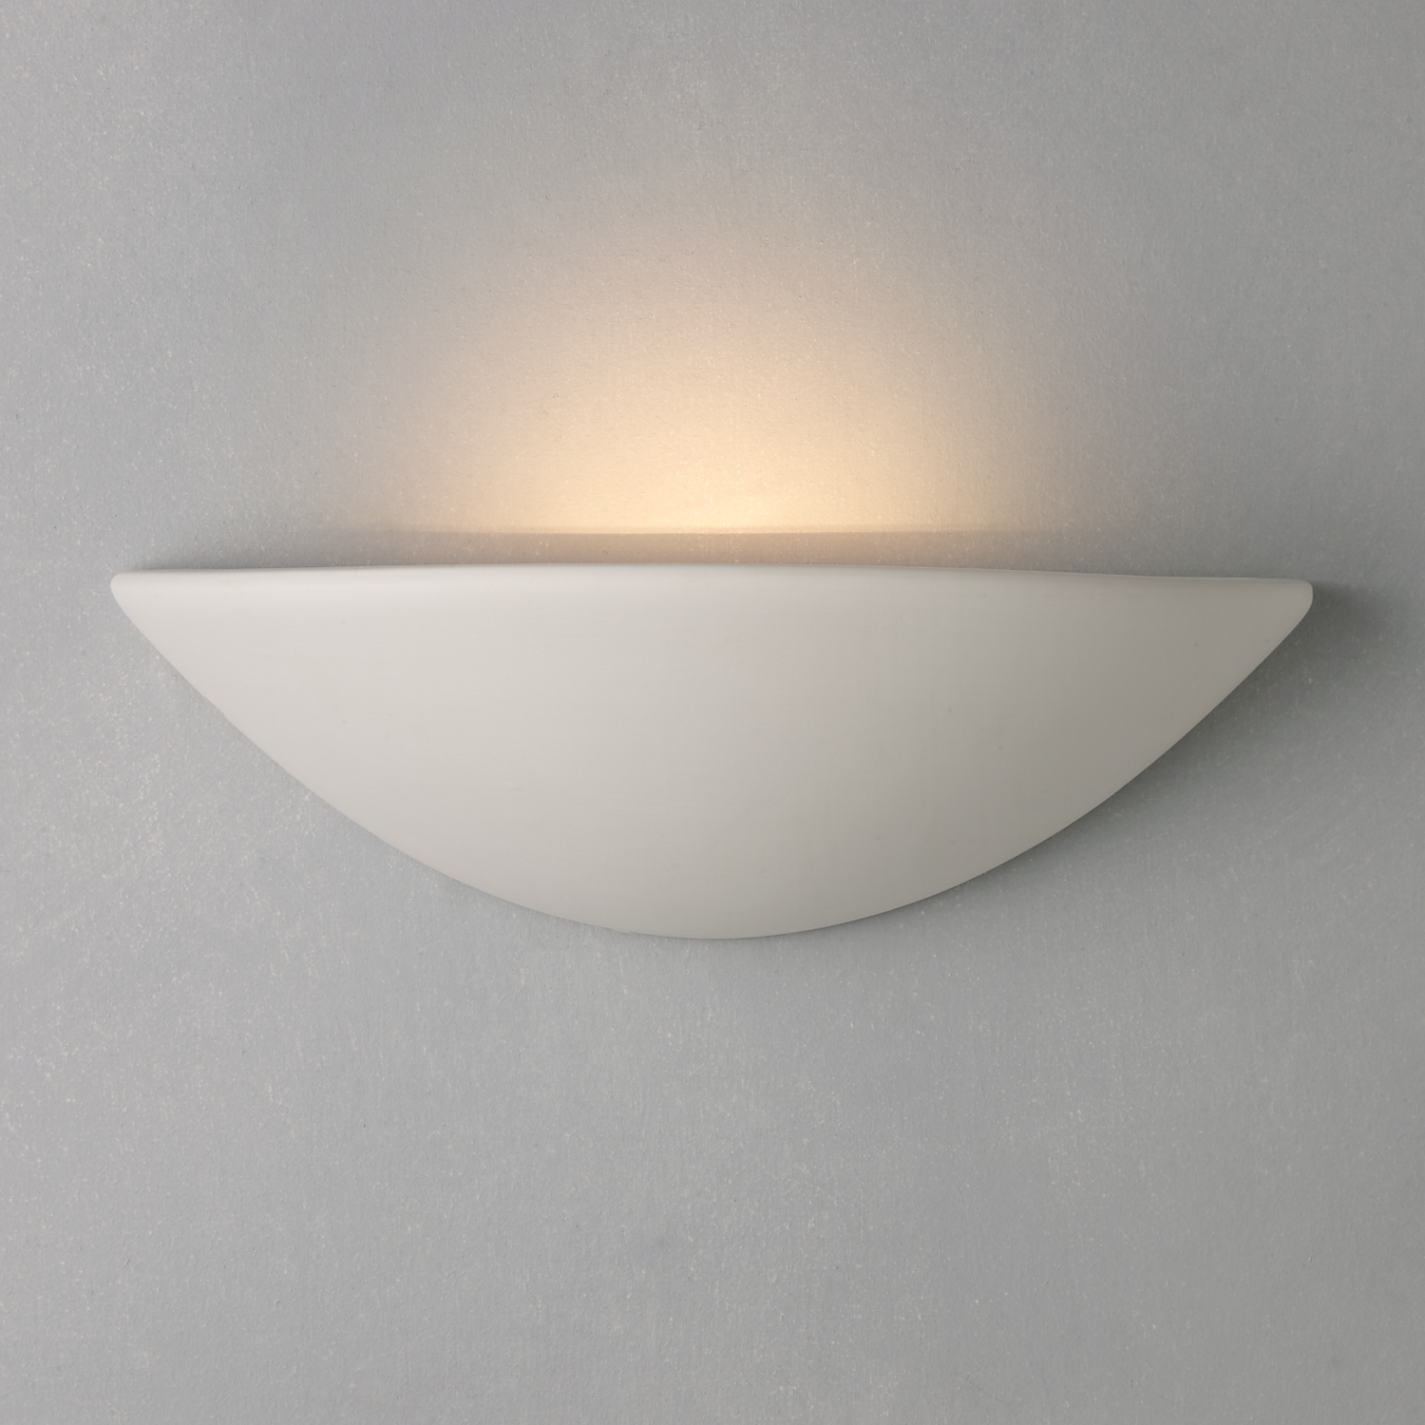 Buy john lewis radius uplighter wall light white john lewis buy john lewis radius uplighter wall light white online at johnlewis mozeypictures